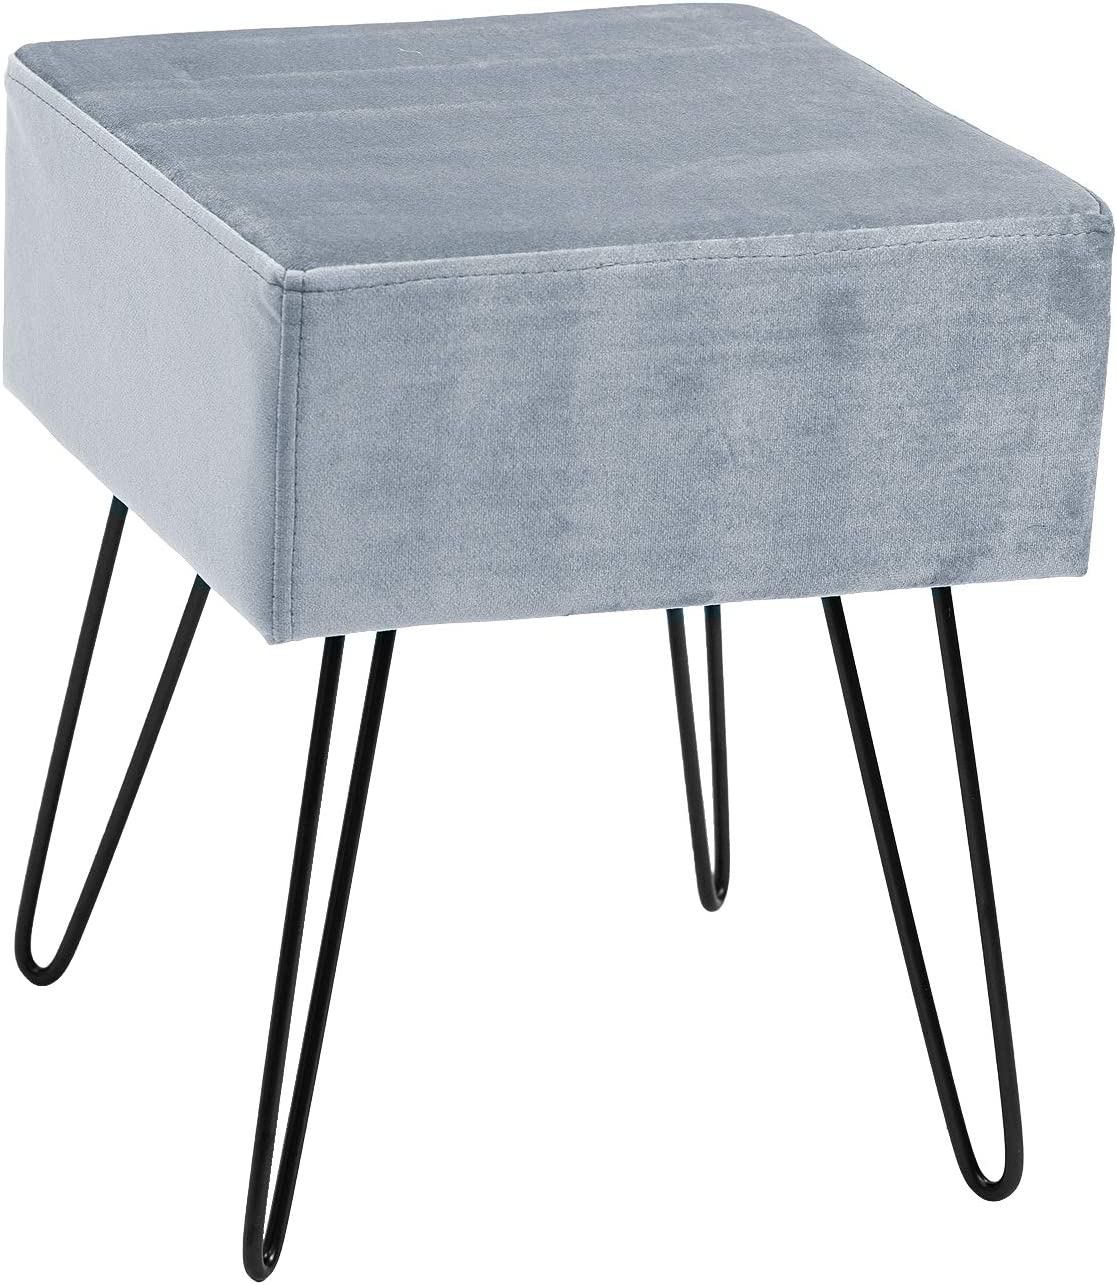 Sorbus Velvet Footrest Stool, Square Mid-Century Modern Luxe Velvet Ottoman, Footstool Side Table, Removable Metal Leg Design Gray